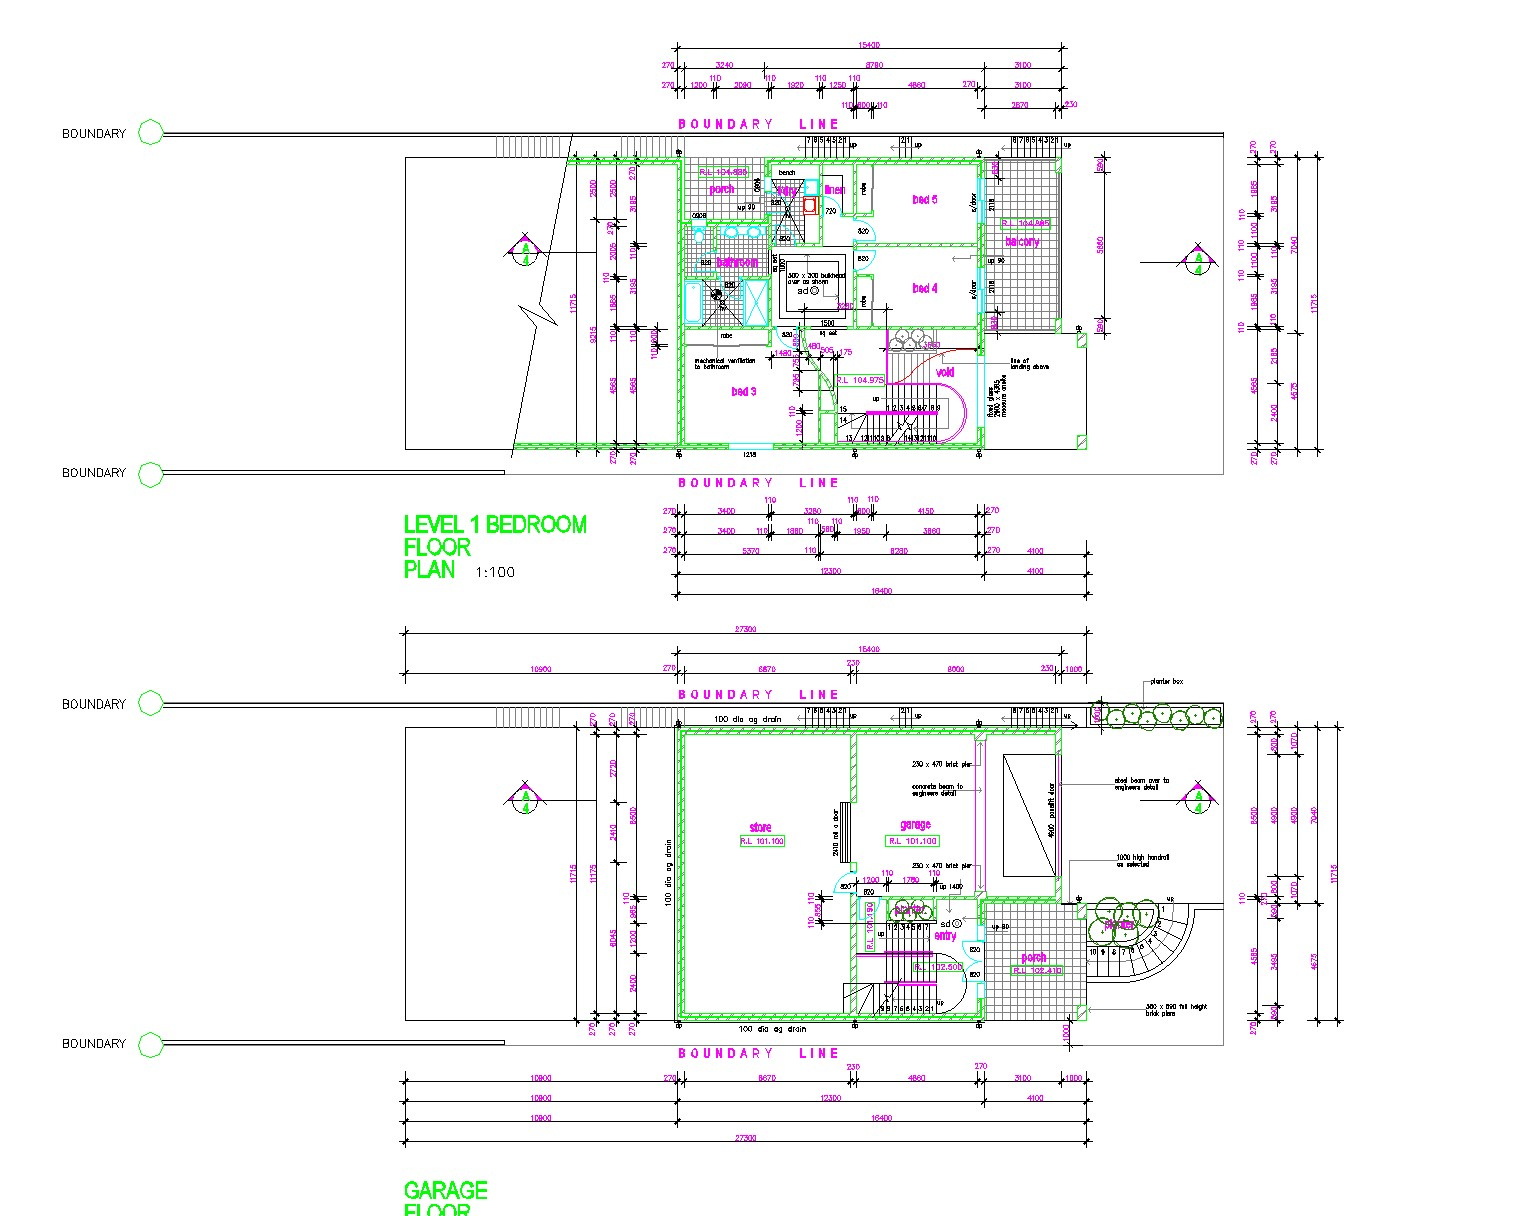 House with five bed rooms layout file